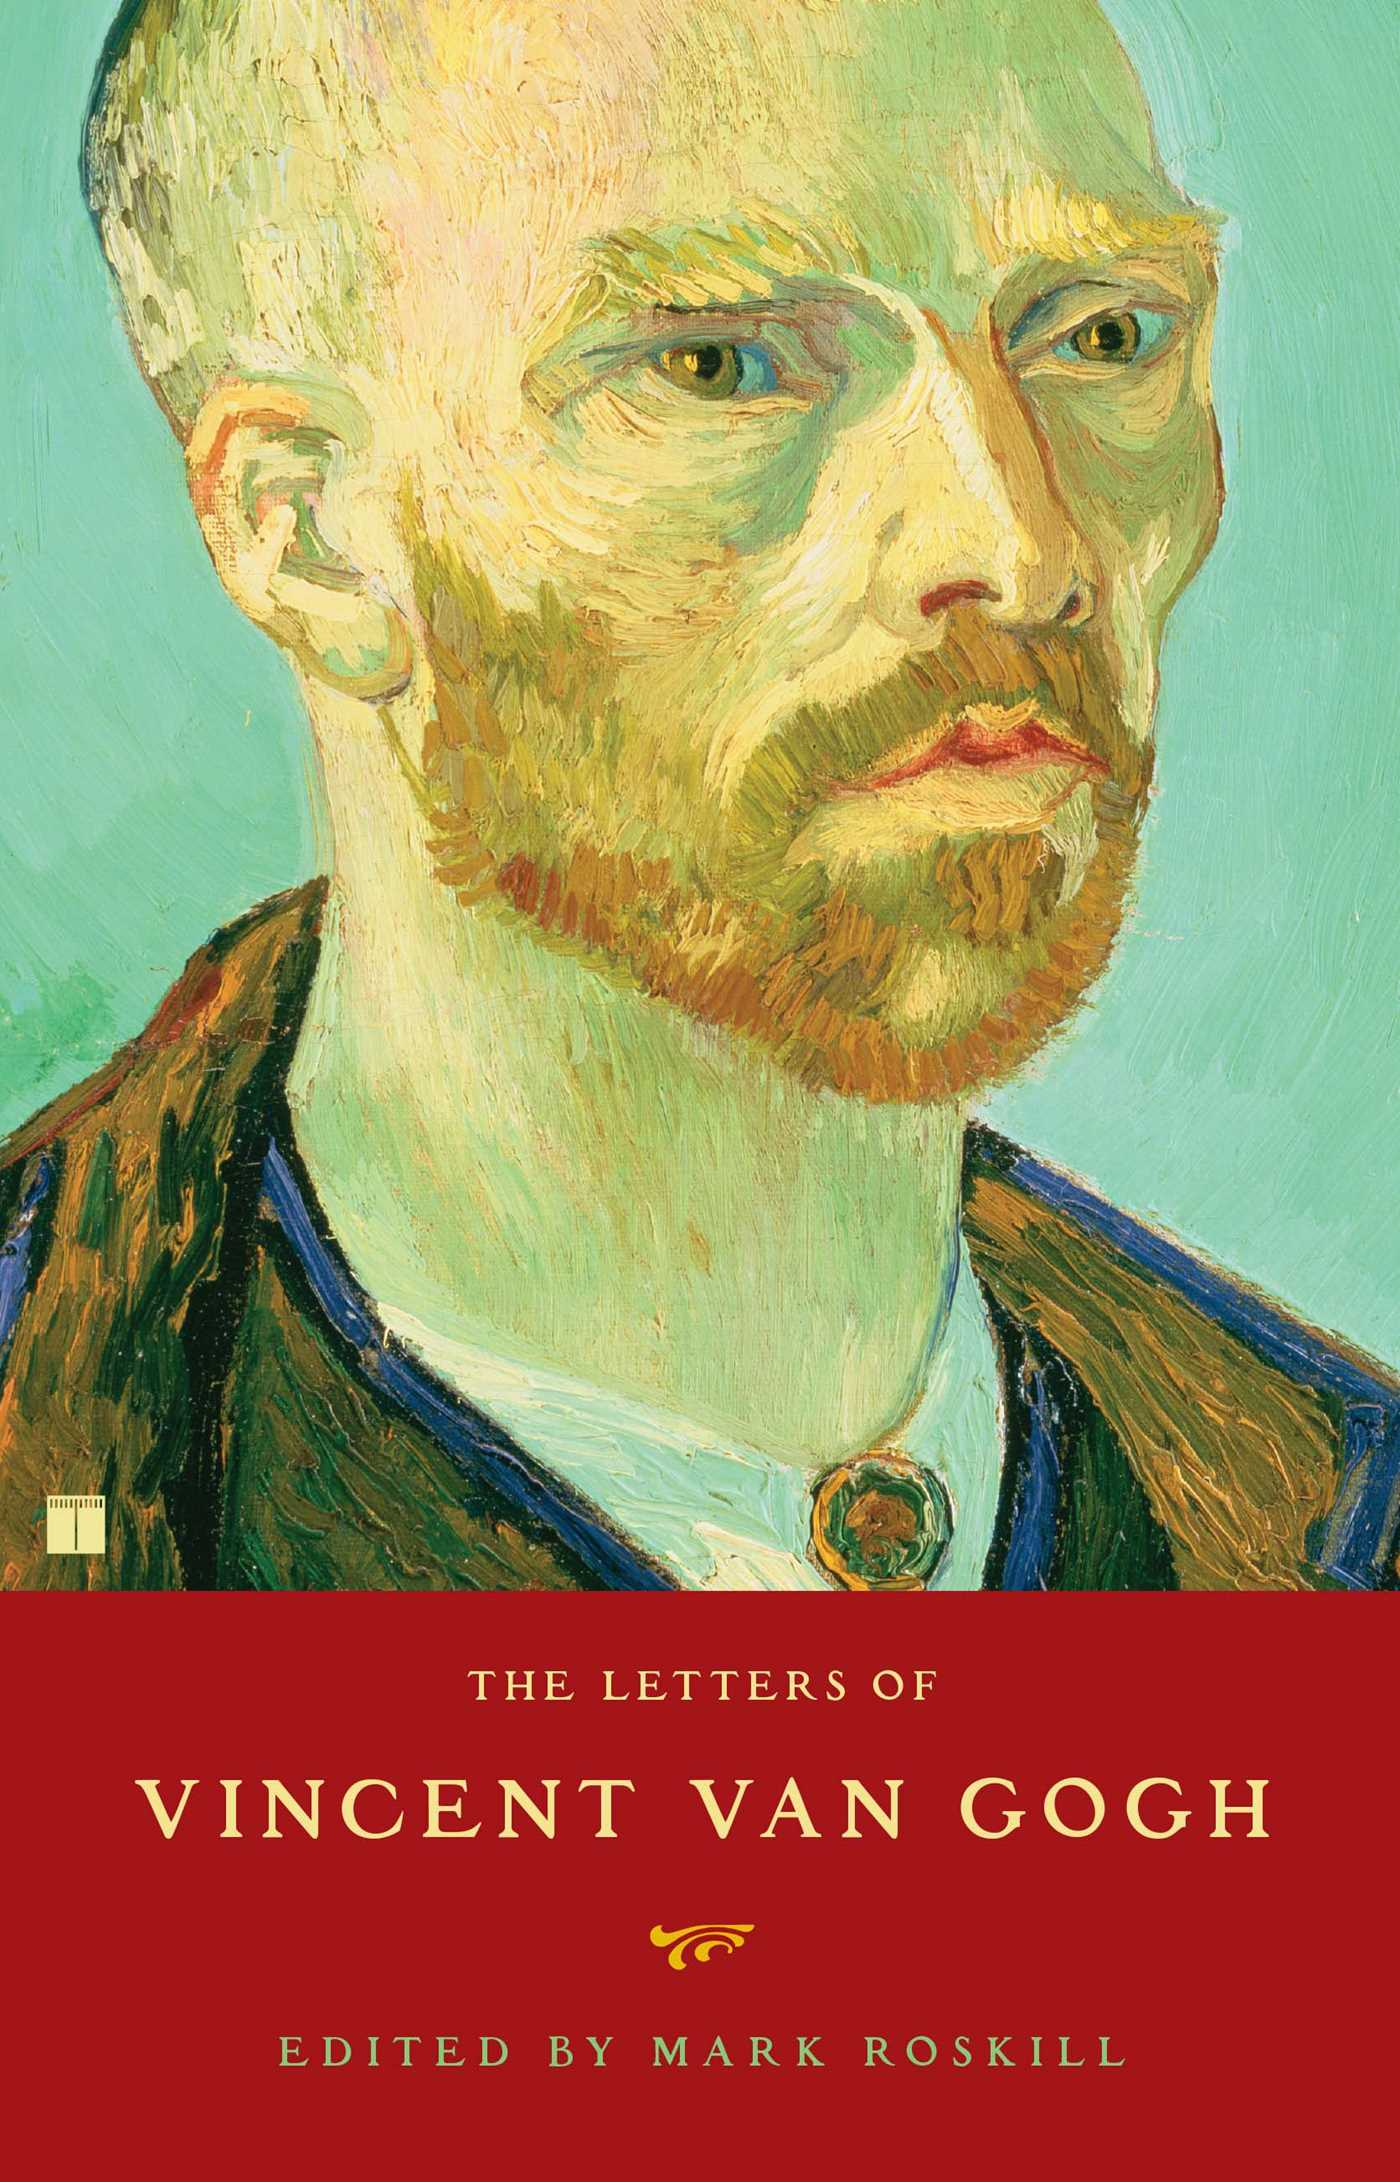 letters of vincent van gogh 9781416580867 hr